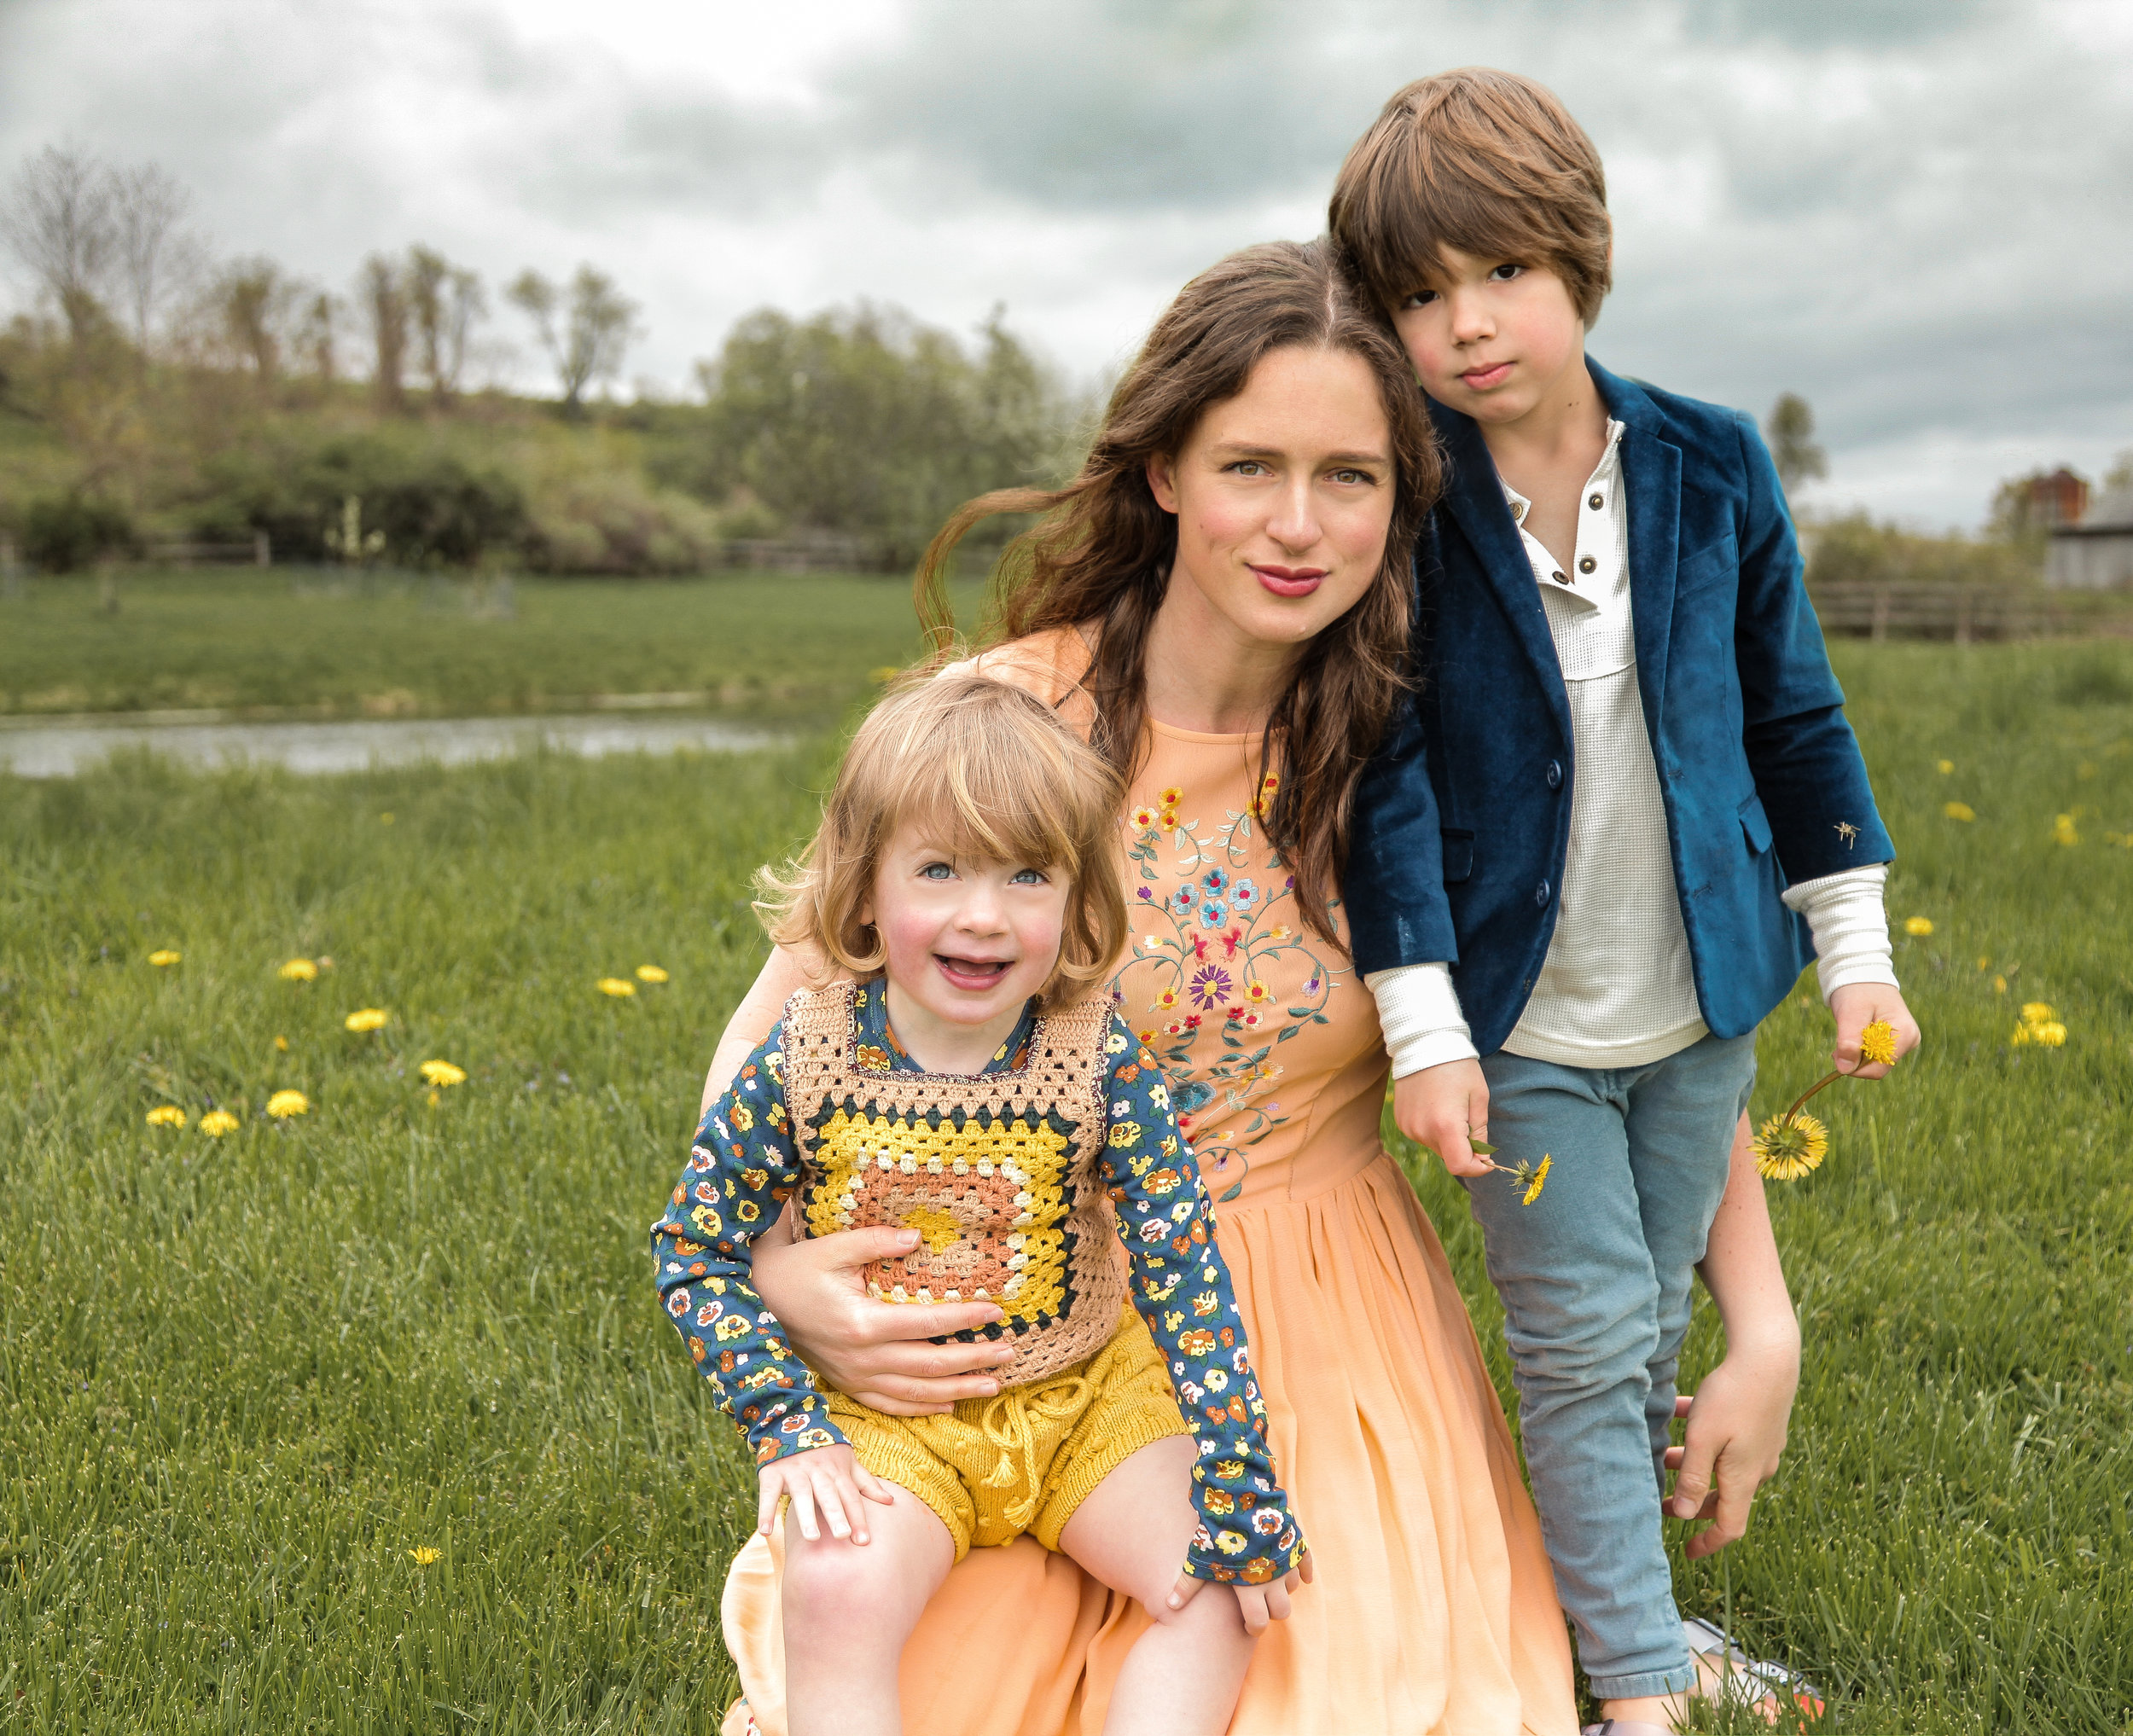 Glynis and her children, Vivi and Everett, on their farm in Dutchess Co.